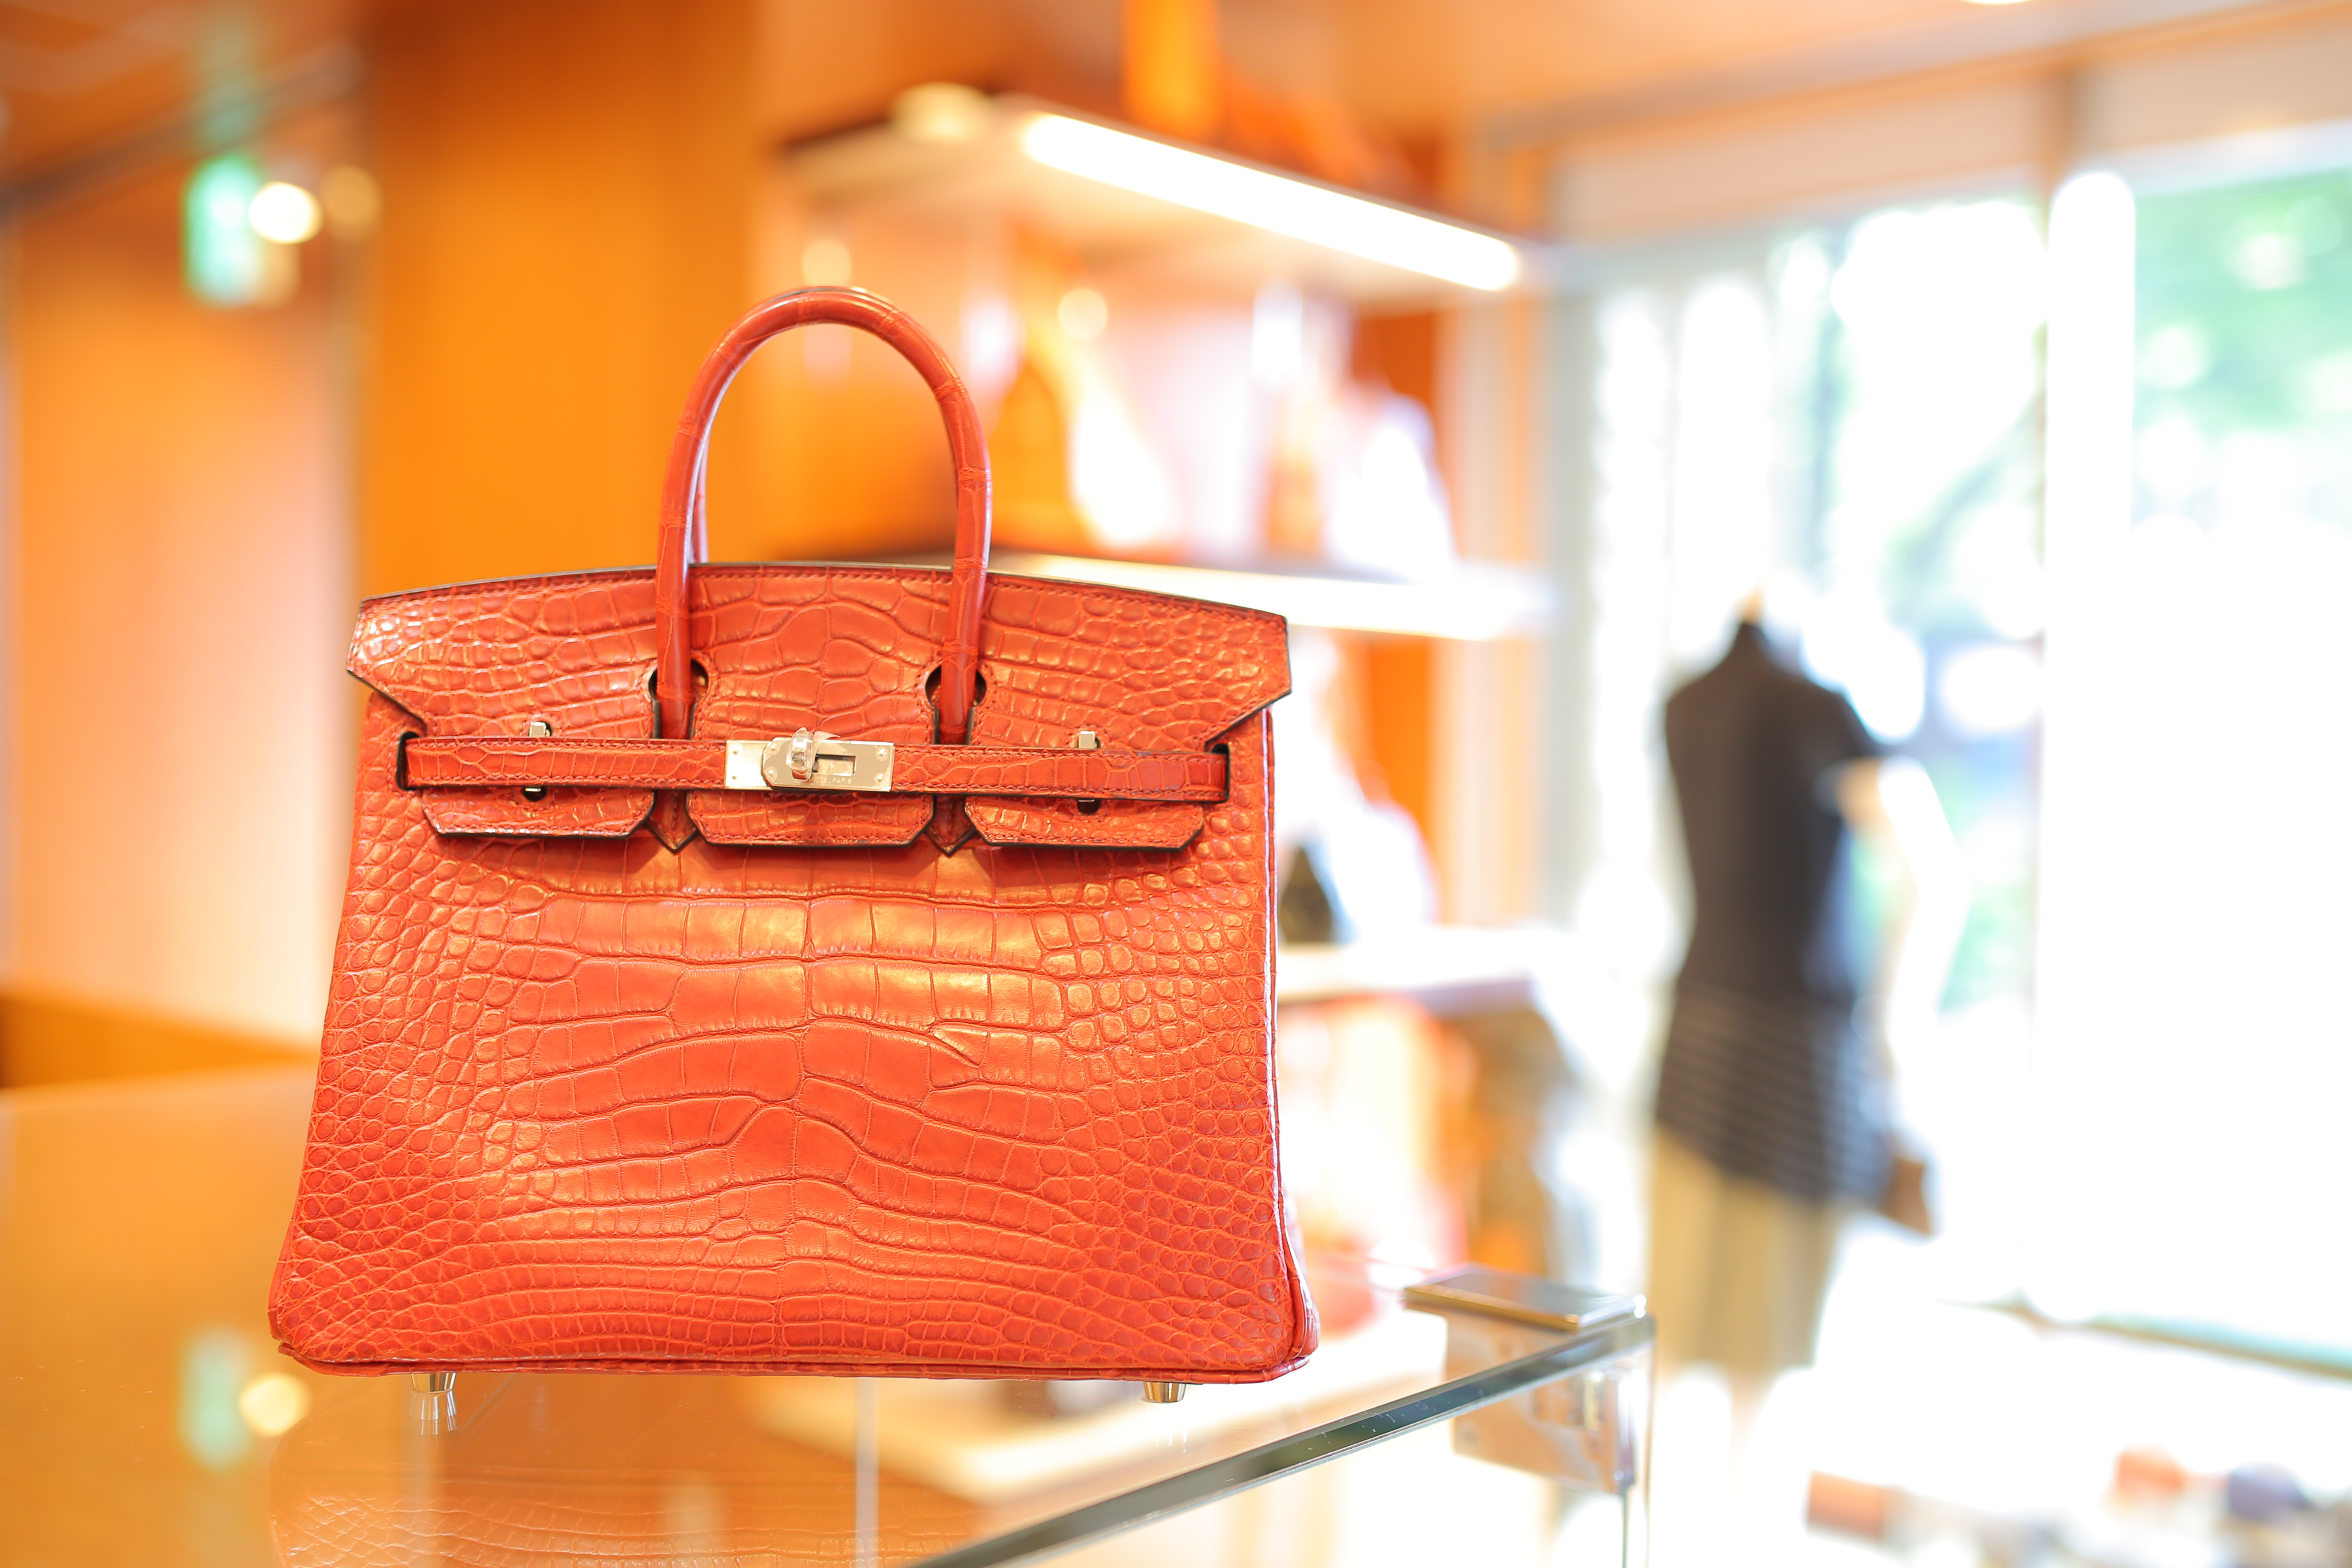 hermes knockoff bags - How Much Does A Hermes Birkin Bag Cost? The Same As 32,500 Pints ...